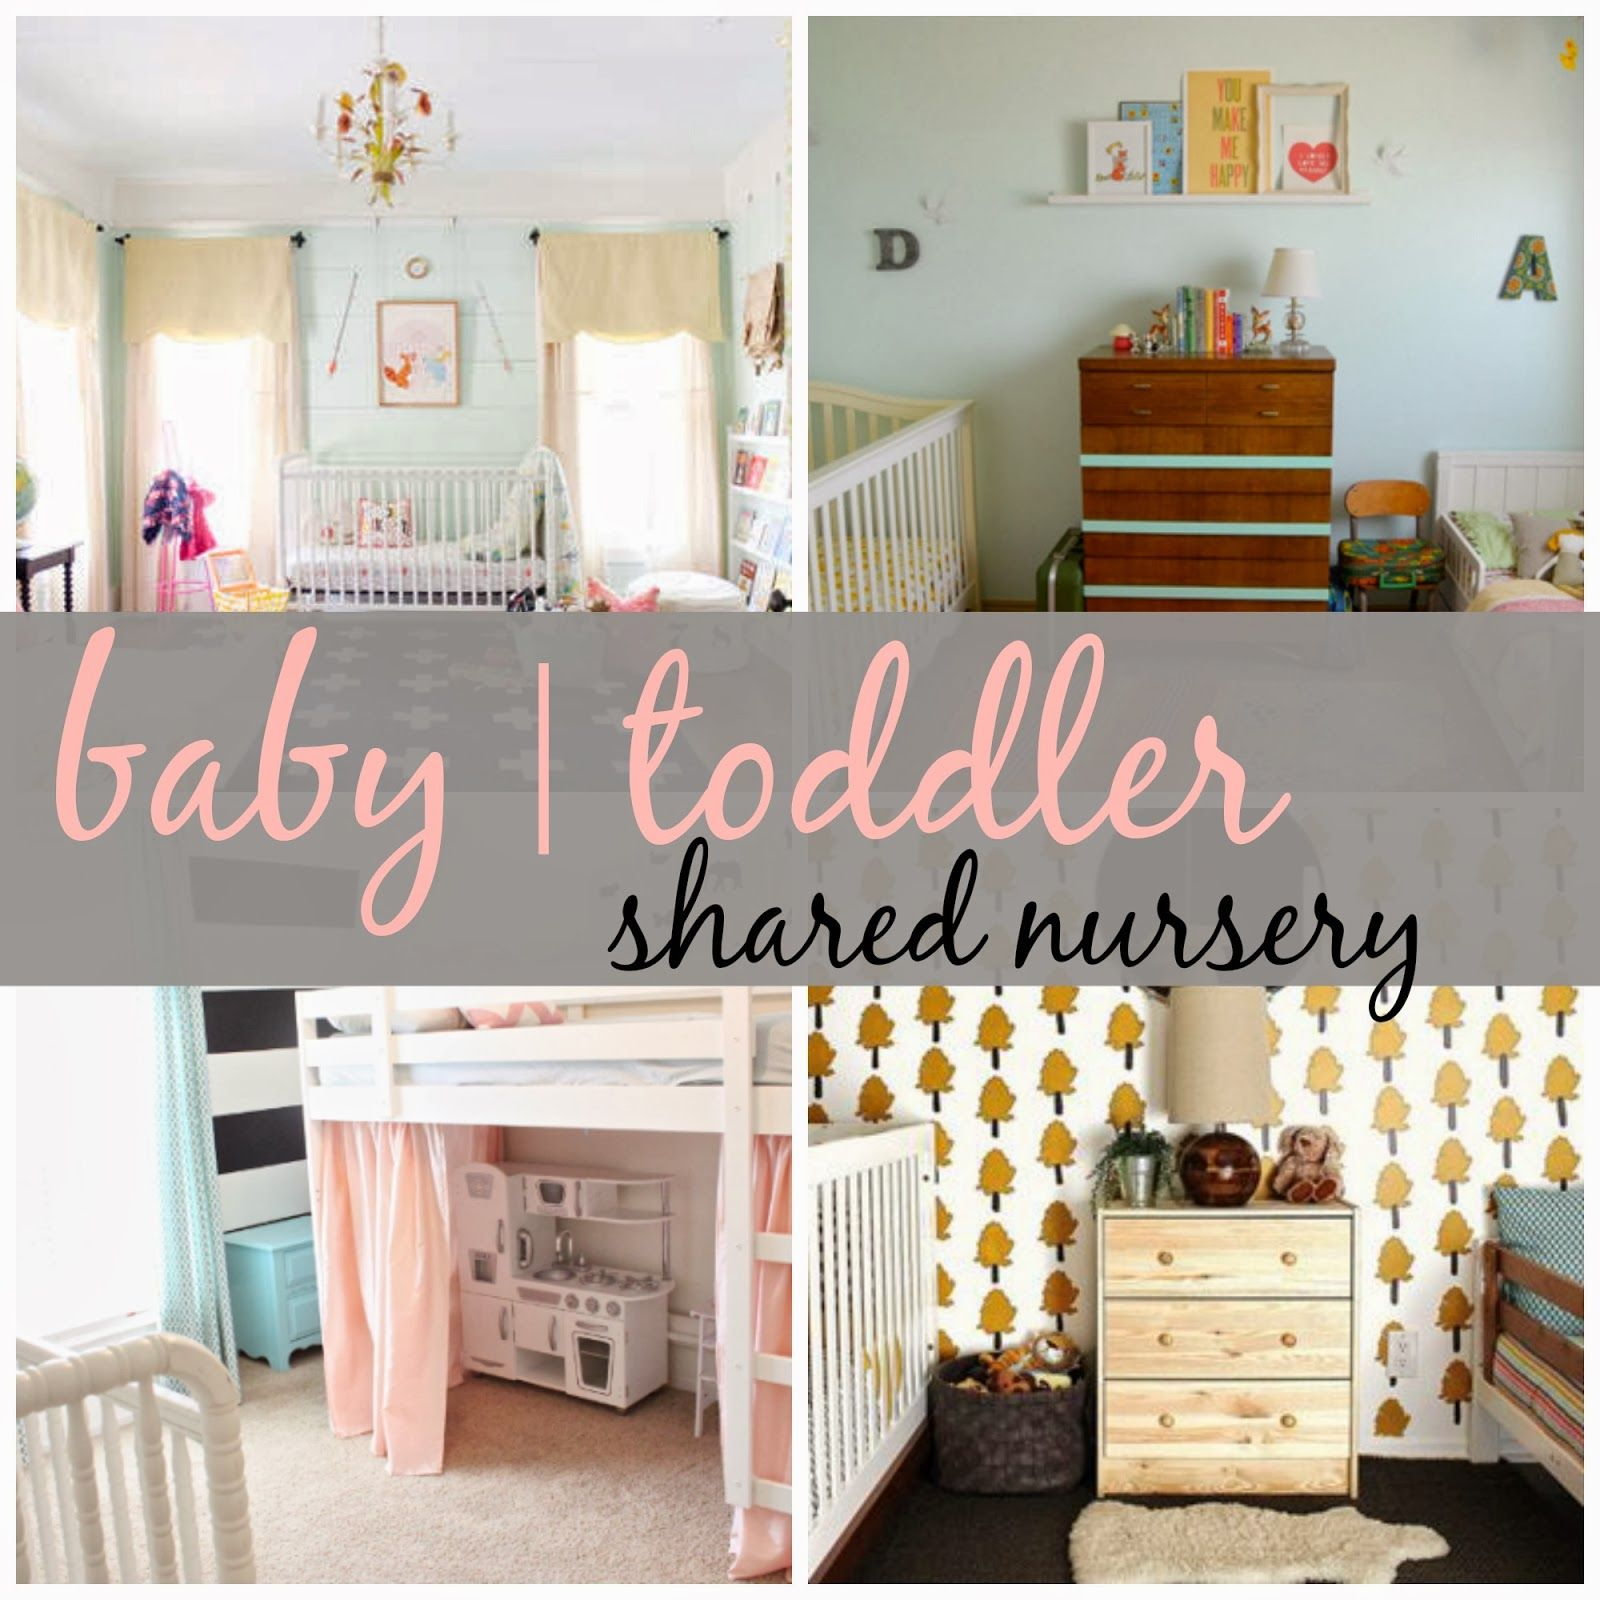 Bedroom Ideas Room Sharing With Baby: Joyful Life : Shared Nursery – Baby